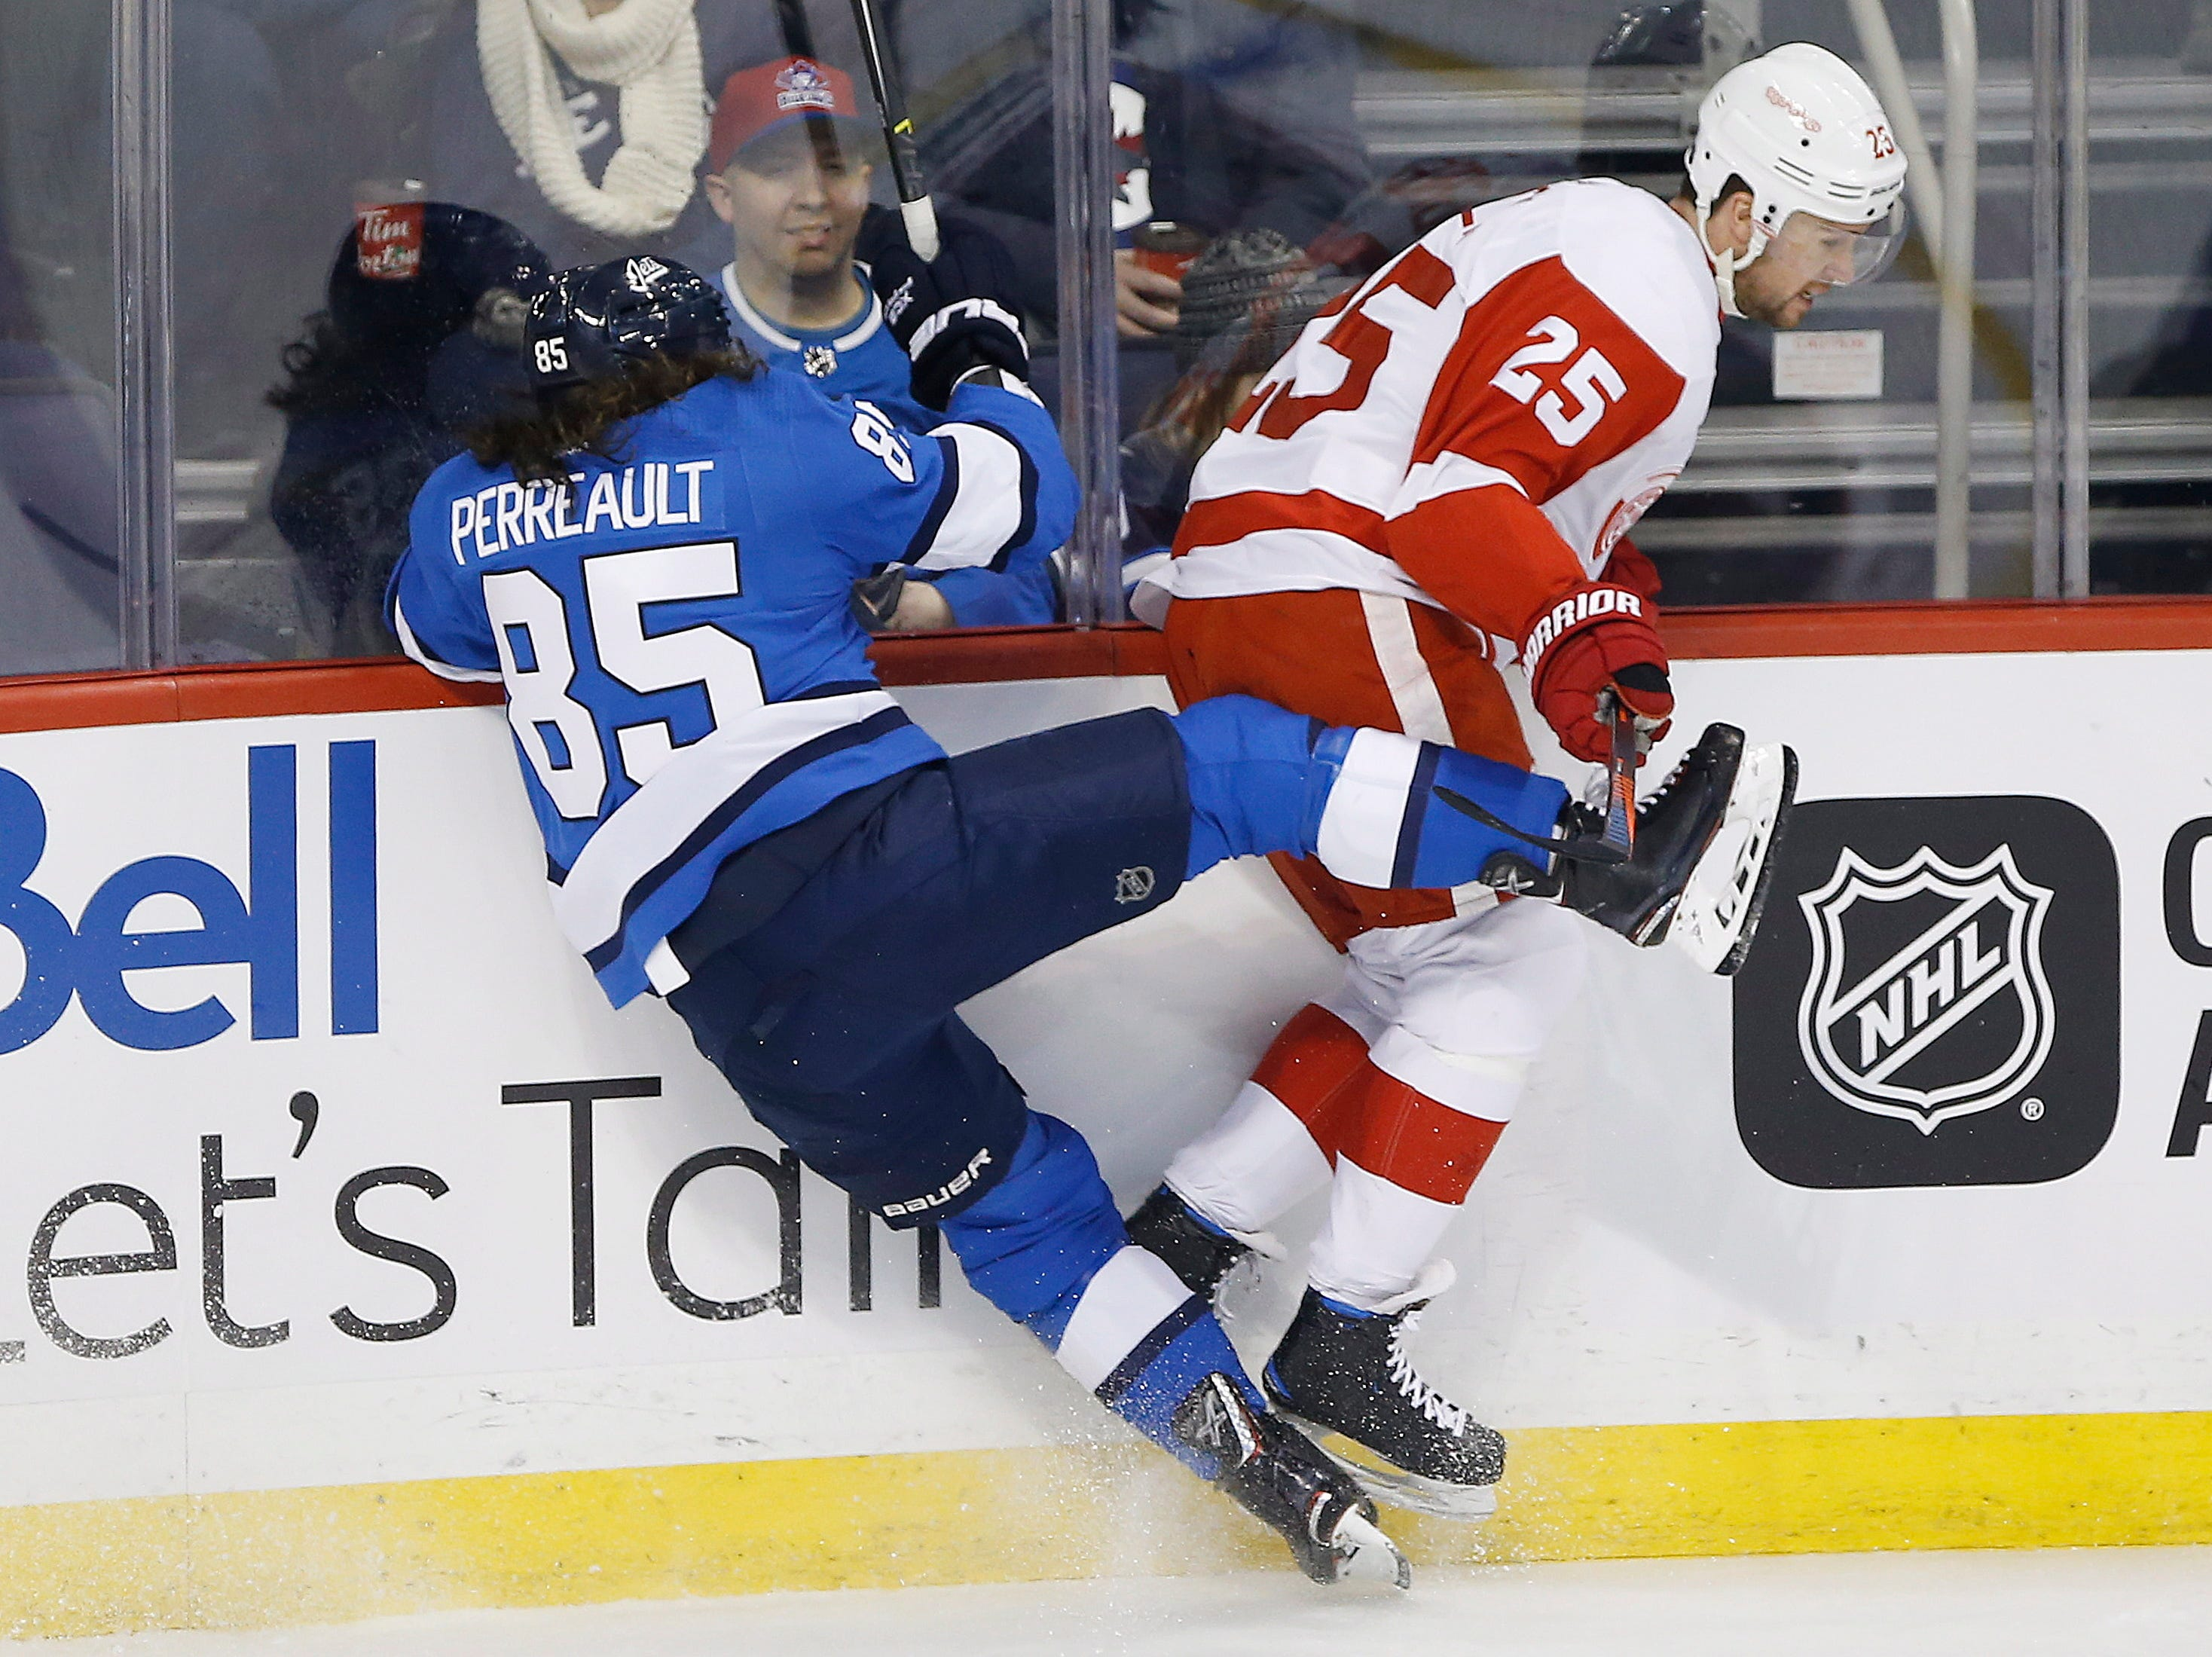 Winnipeg Jets' Mathieu Perreault (85) and Detroit Red Wings' Mike Green (25) collide during the first period.